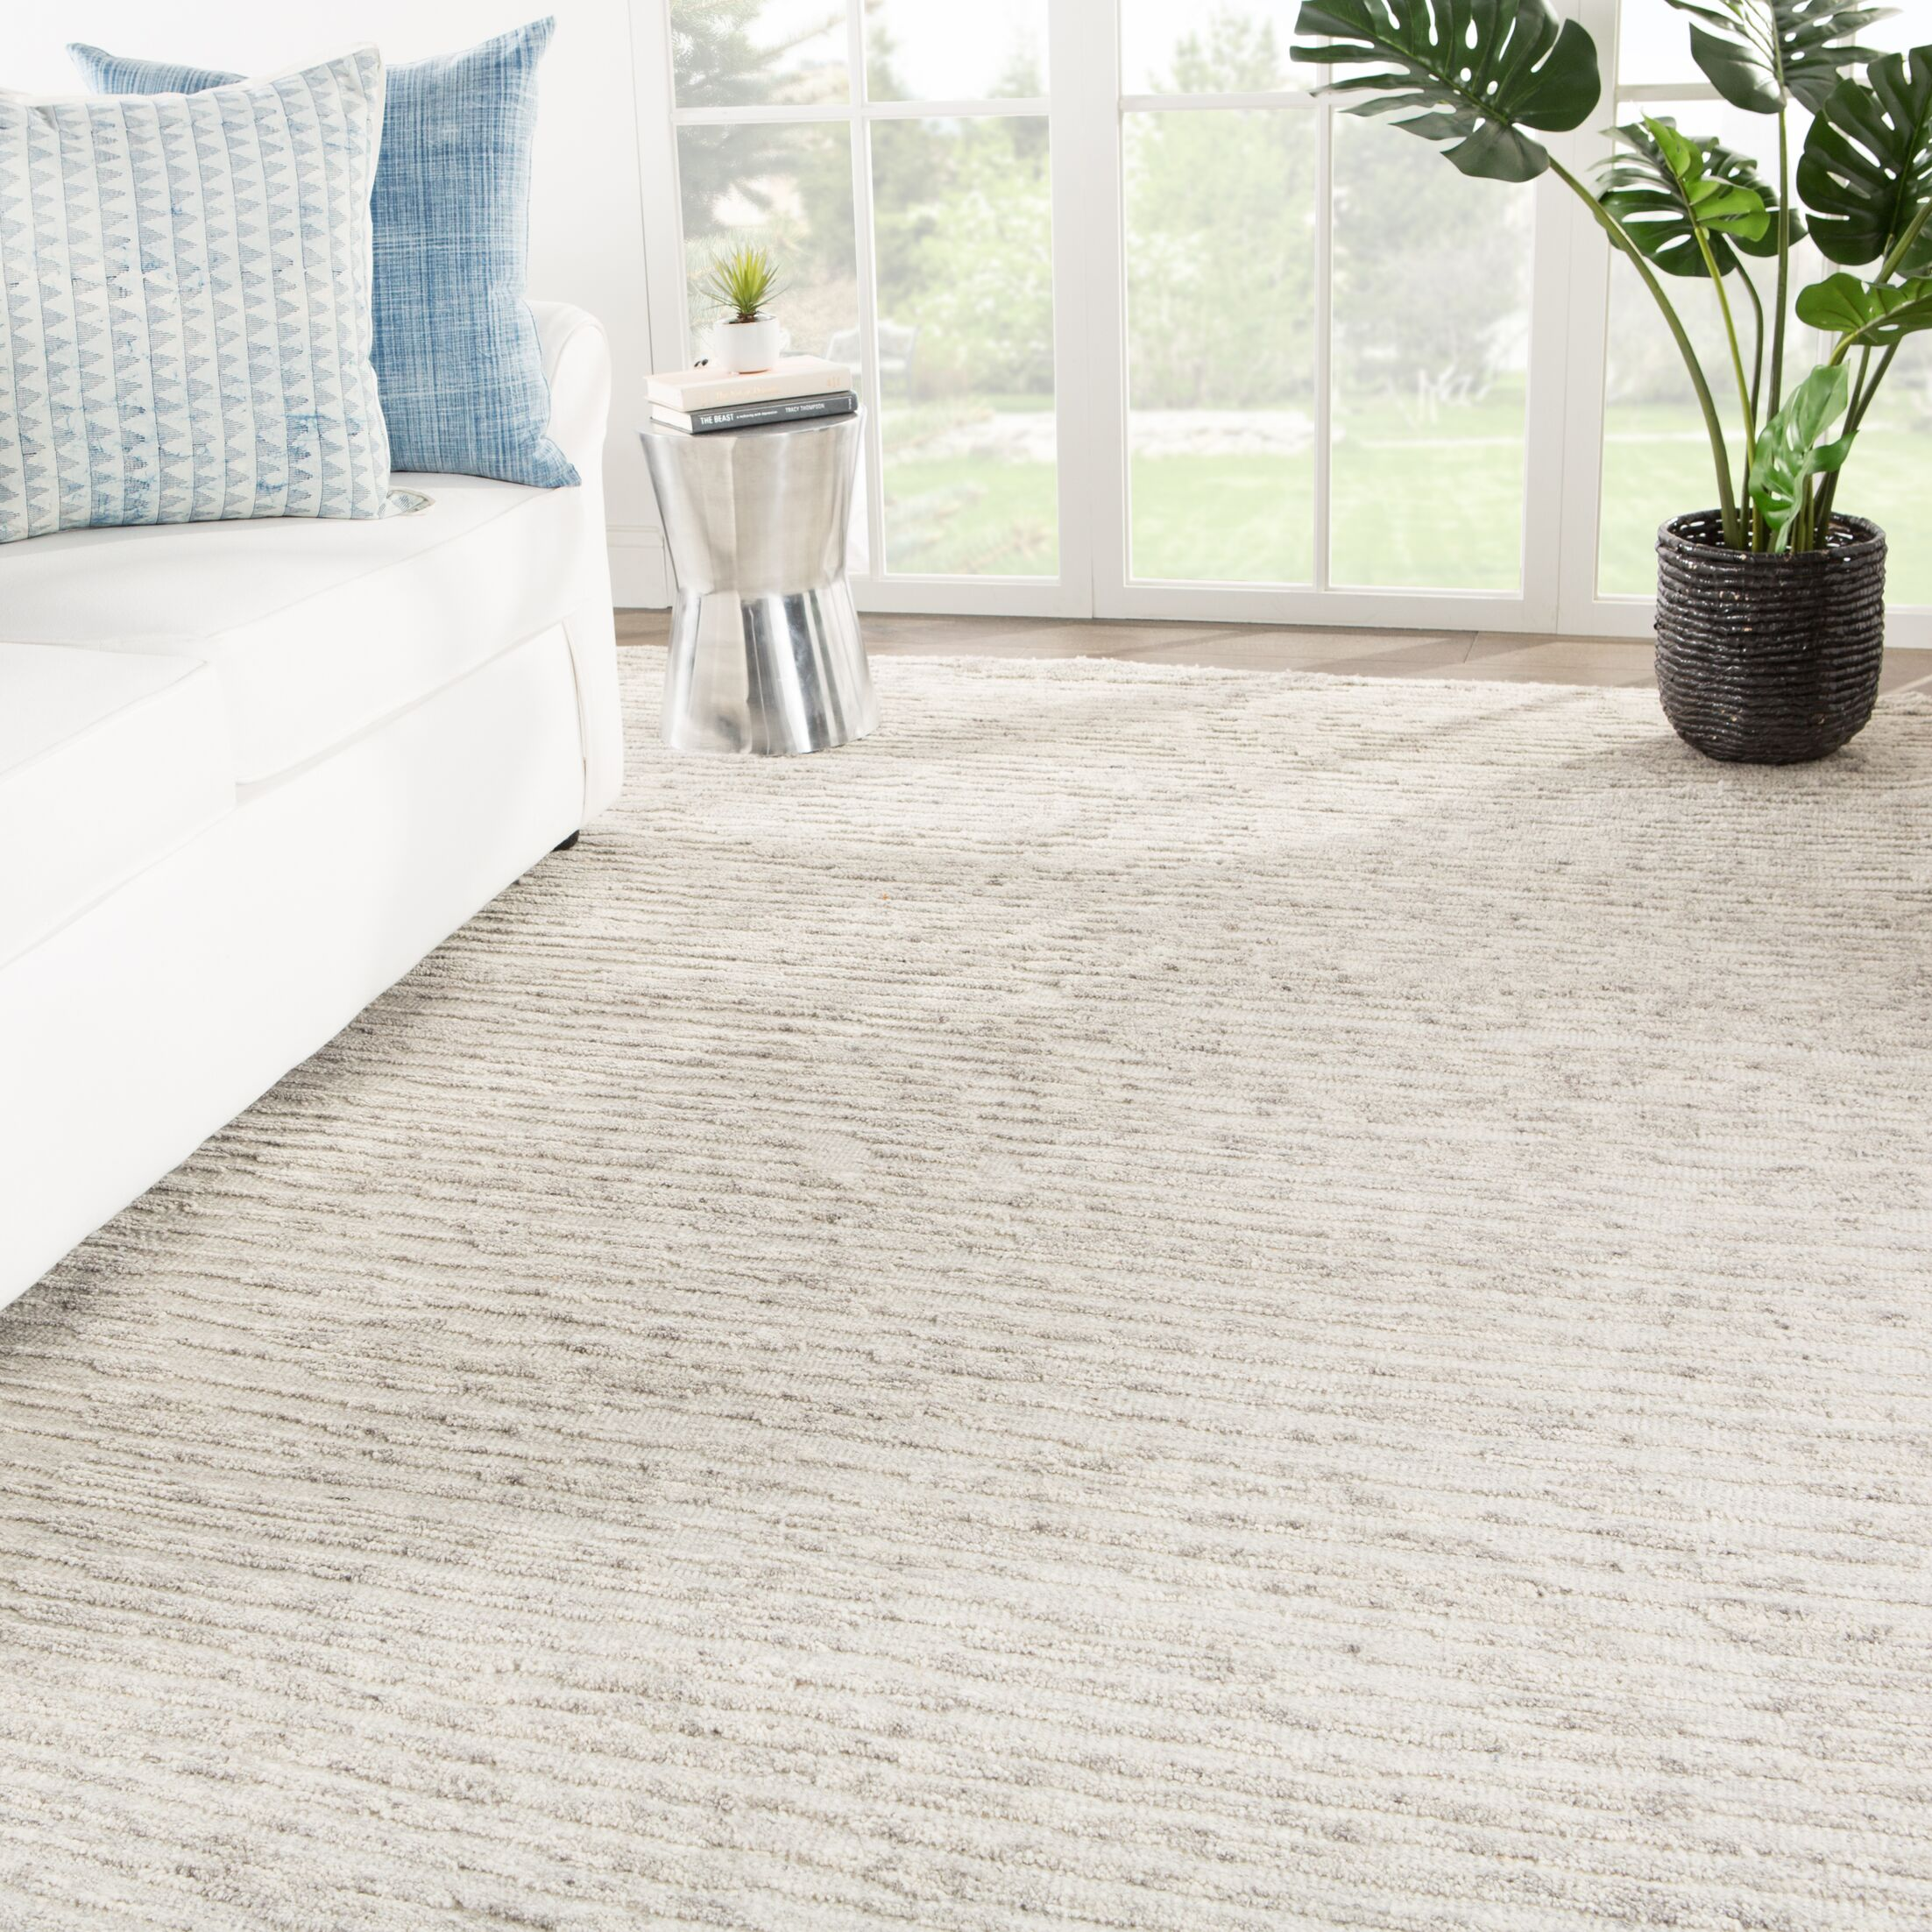 Aquilar Solid Hand-Knotted Wool Ivory Area Rug Rug Size: Rectangle 7'10